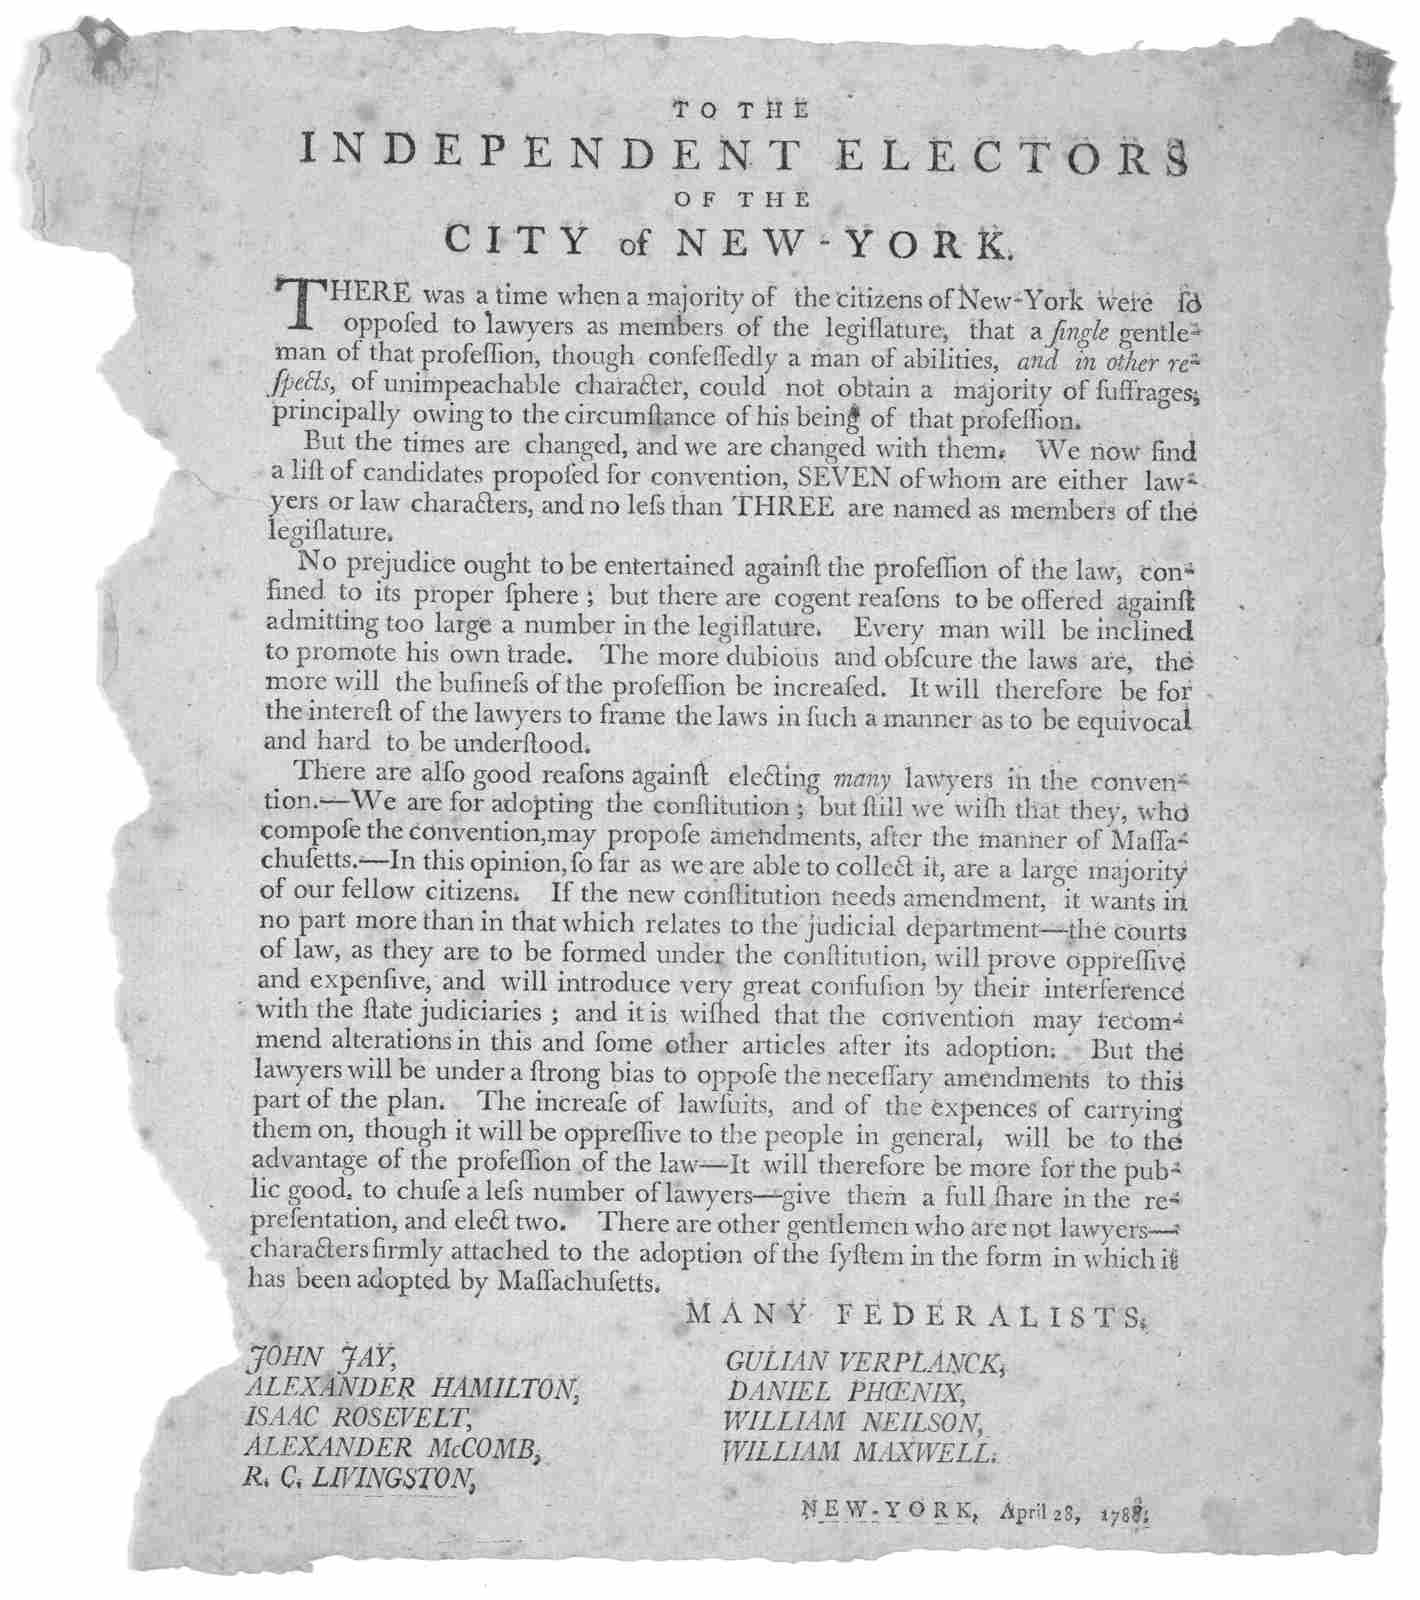 To the independent electors of the City of New York. There was a time when a majority of the citizens of New-York were so opposed to lawyers as members of the legislature, that a single gentleman of that profession, though confessedly a man of a